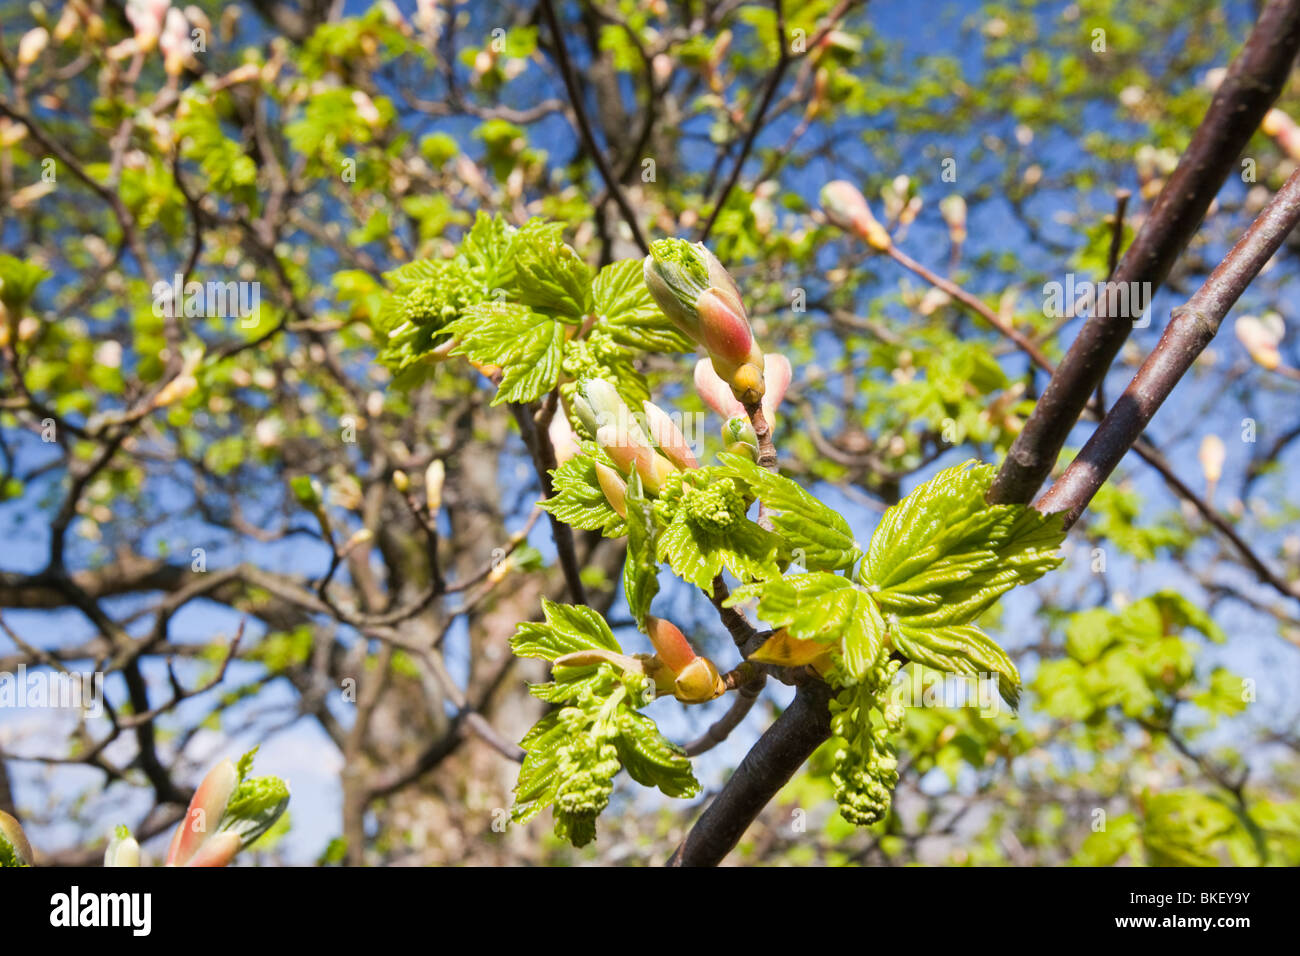 Buds and leaves emerging from a Sycamore tree in spring in Ambleside UK. - Stock Image